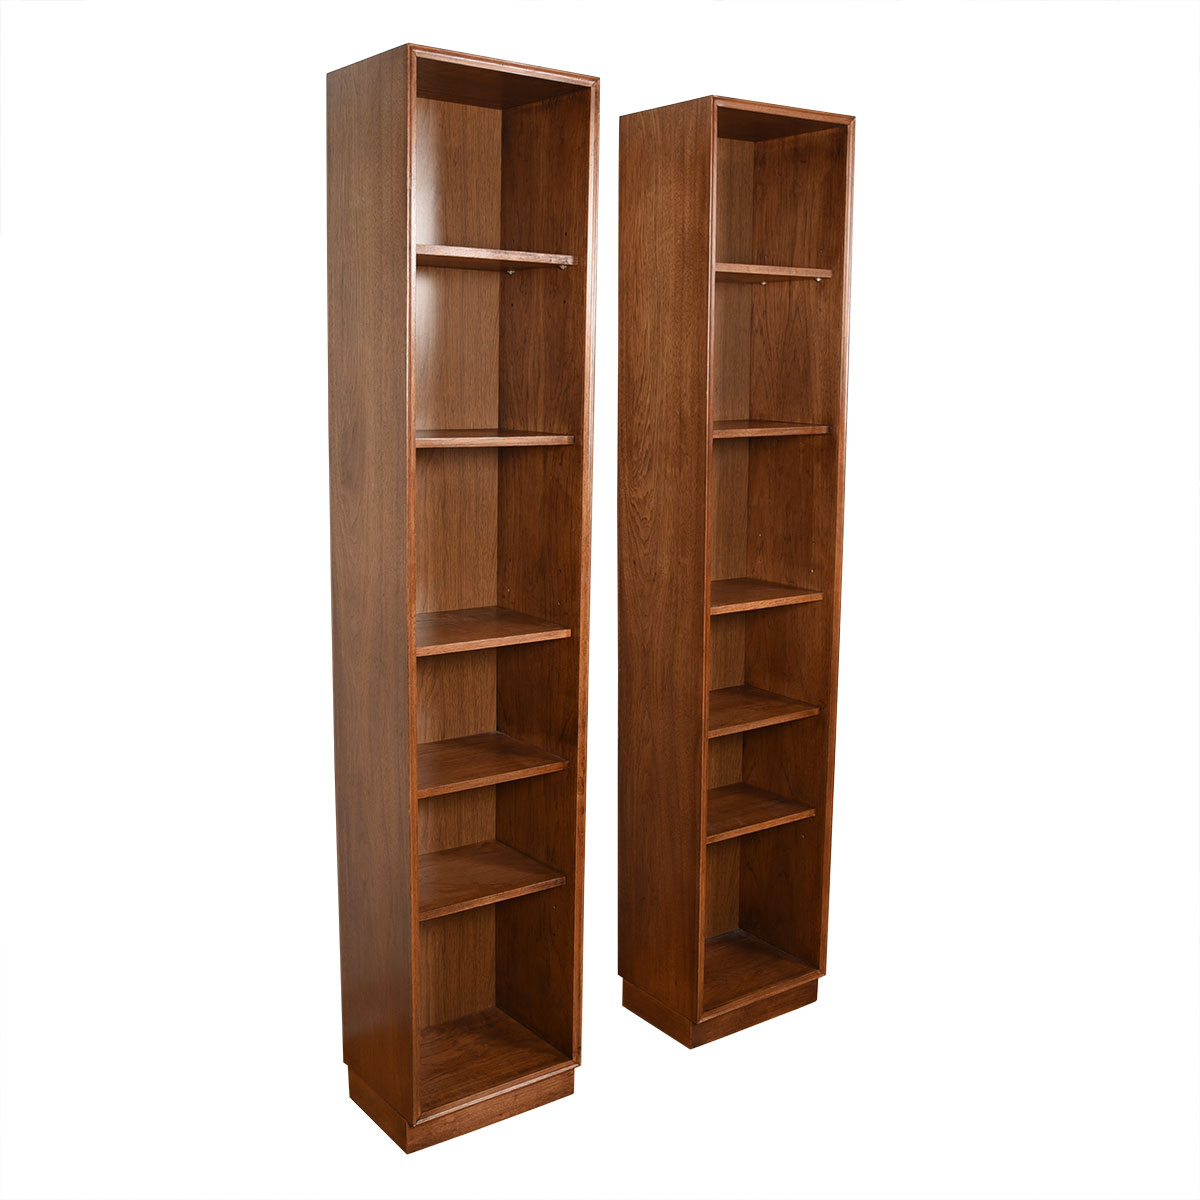 Pair of Tall Thin Open Bookcases w/ Removable Shelves